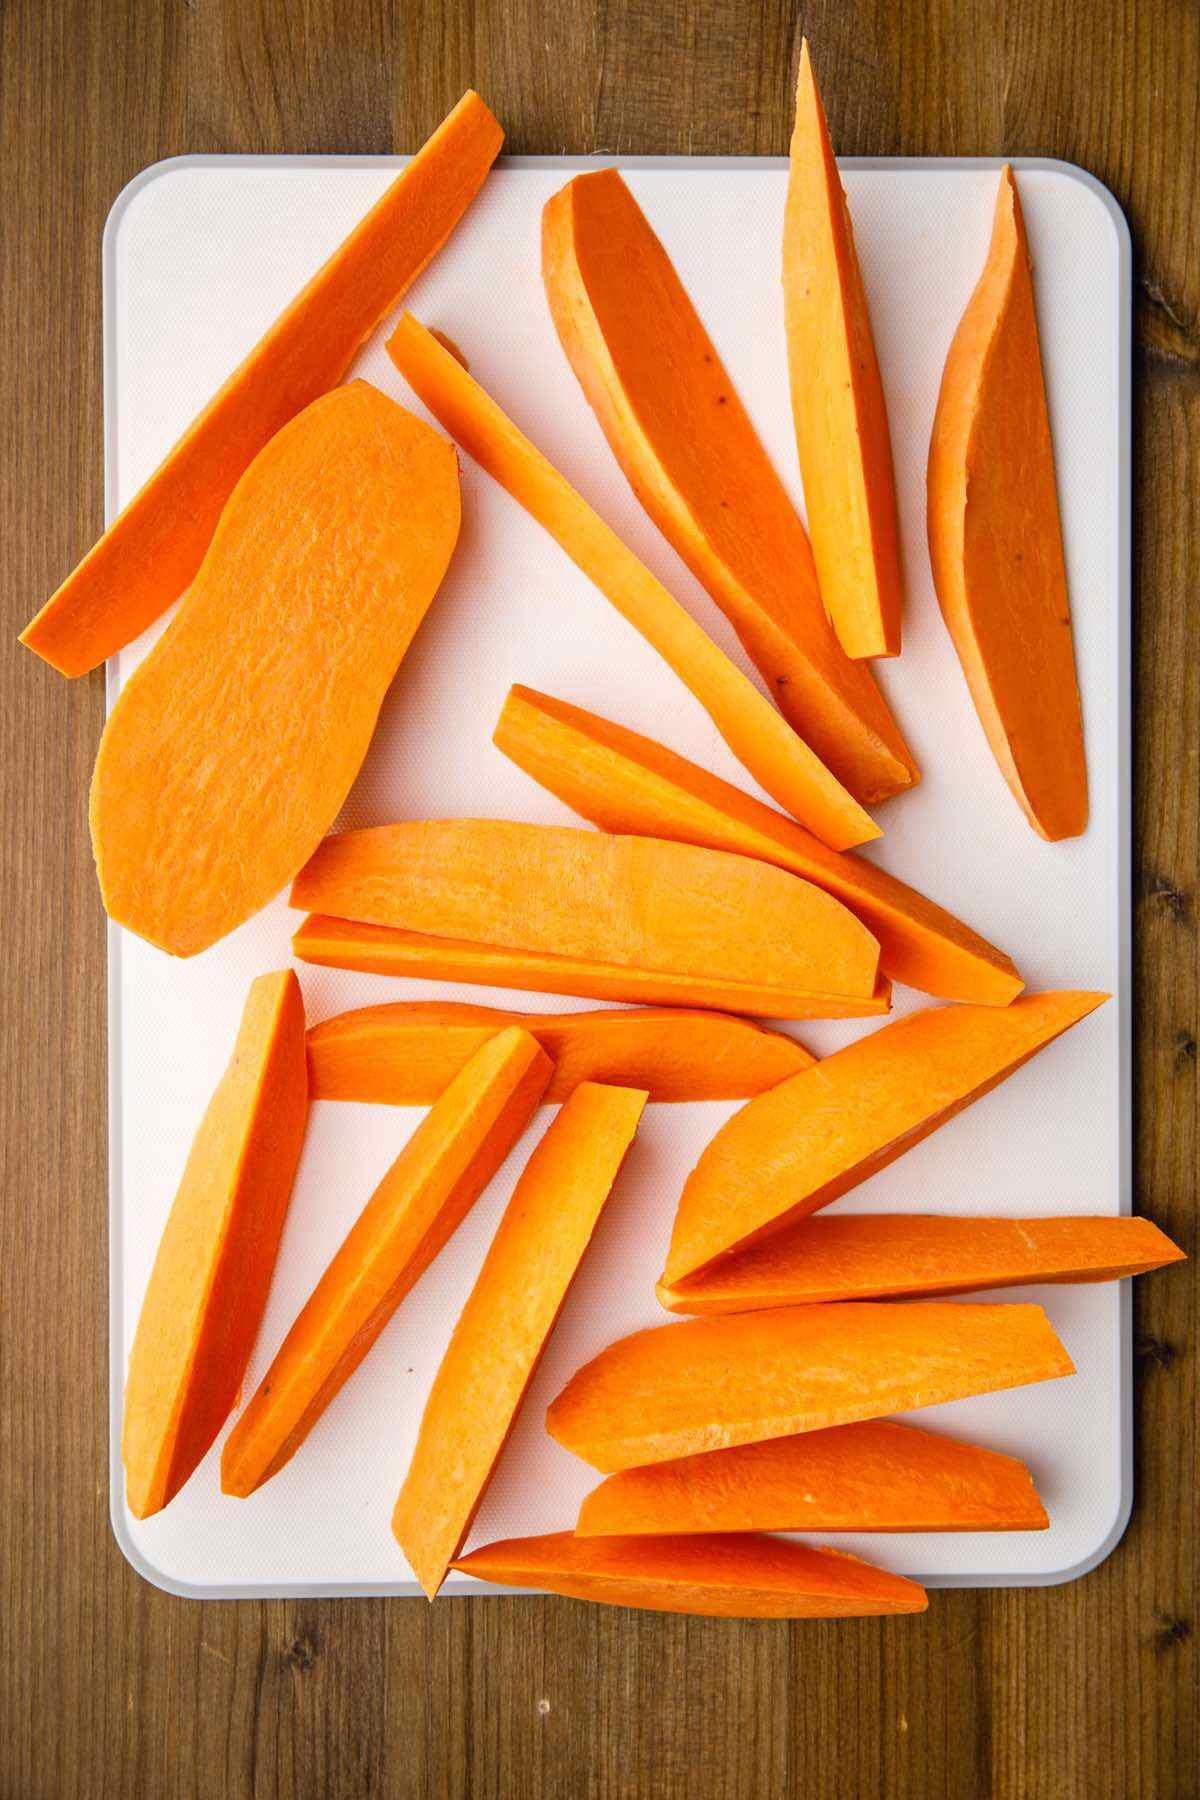 chopped sweet potato wedges